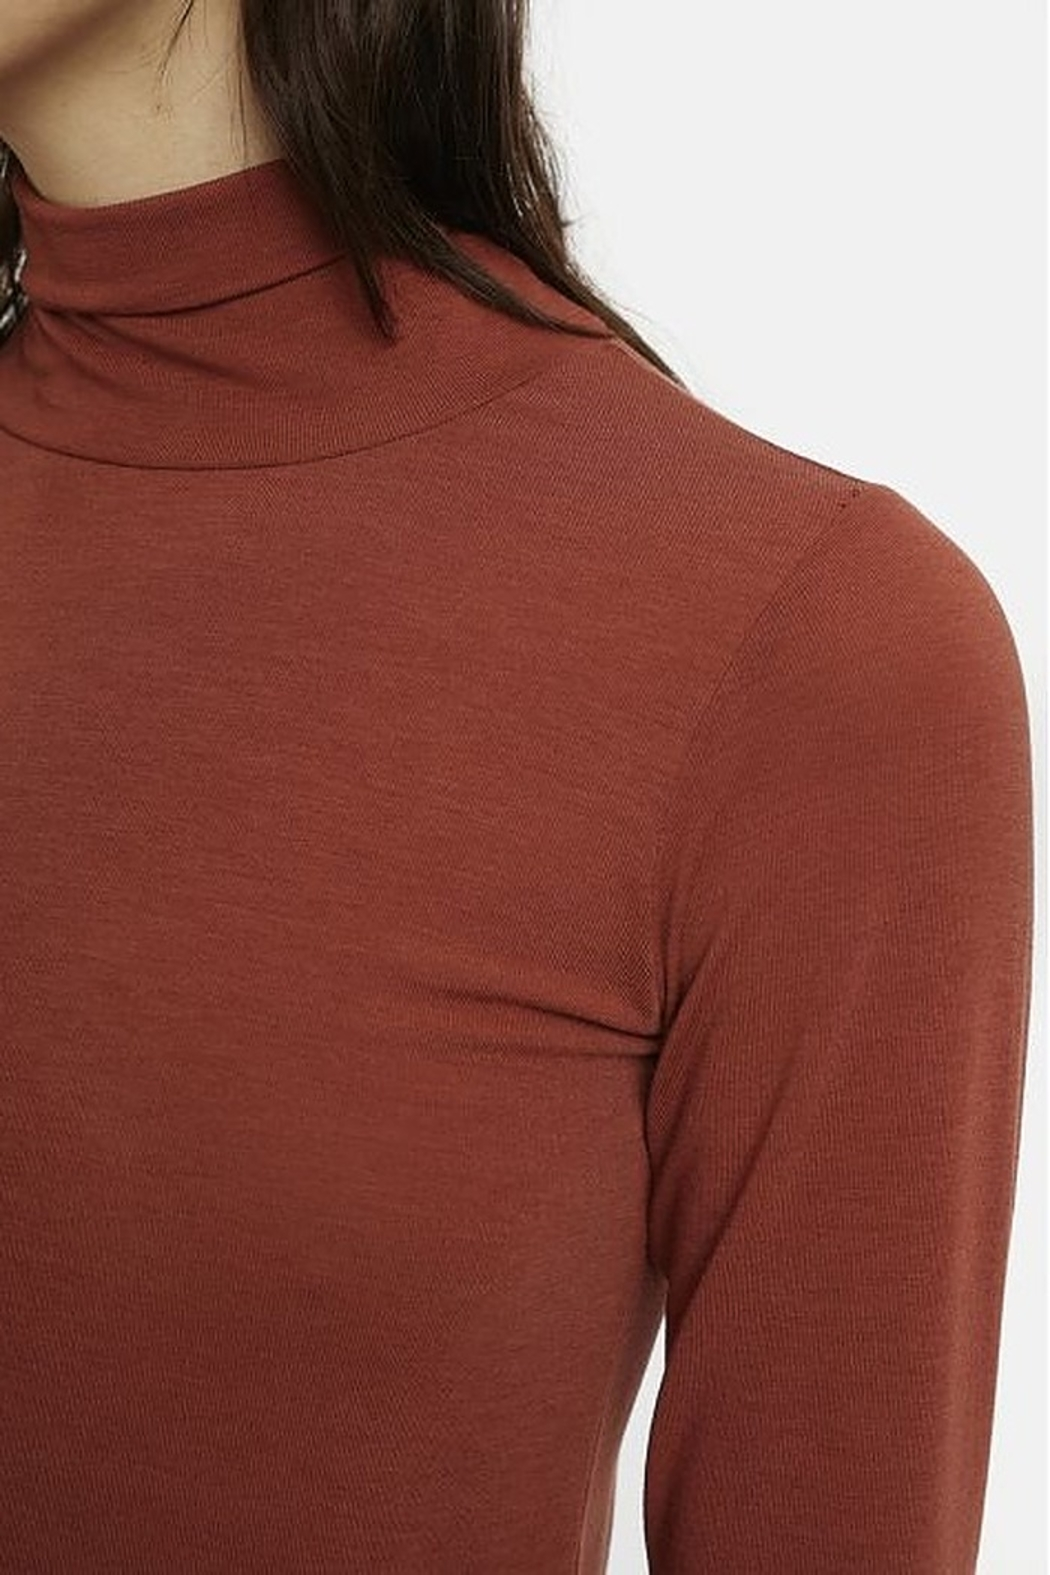 Compania Fantastica Fitted Turtle Neck - Side Cropped Image